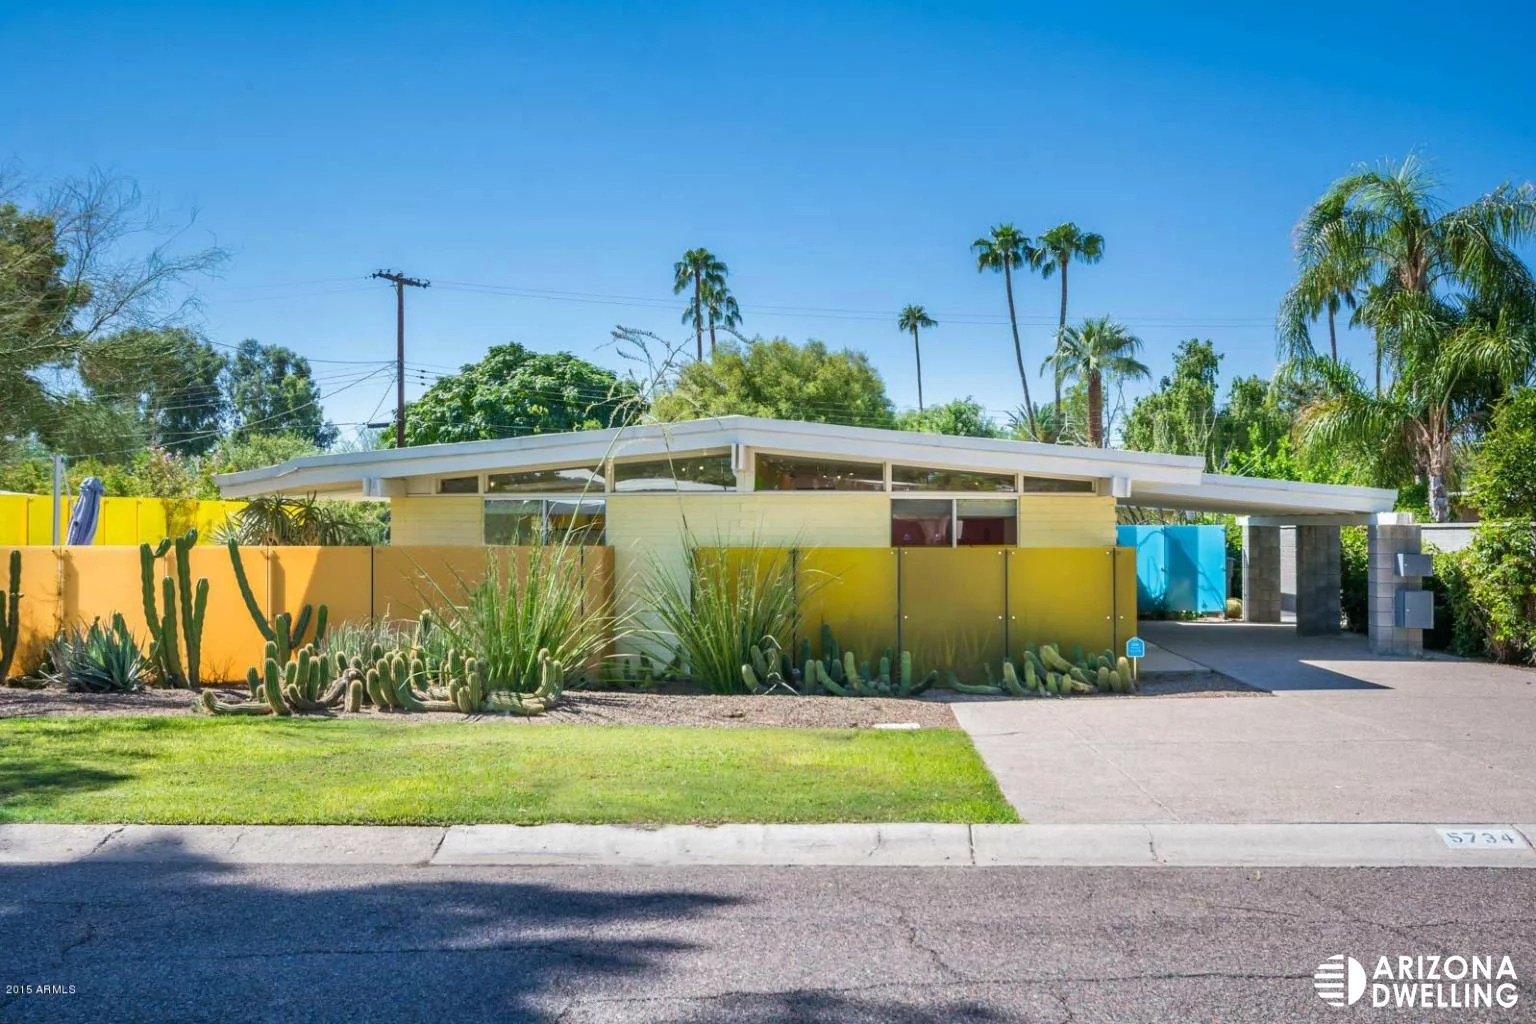 Favorite Thinking Ralph Haver Homes Mid Century Az Mid Century Homes Sale Mid Century Homes Palm Springs Sale curbed Mid Century Modern Homes